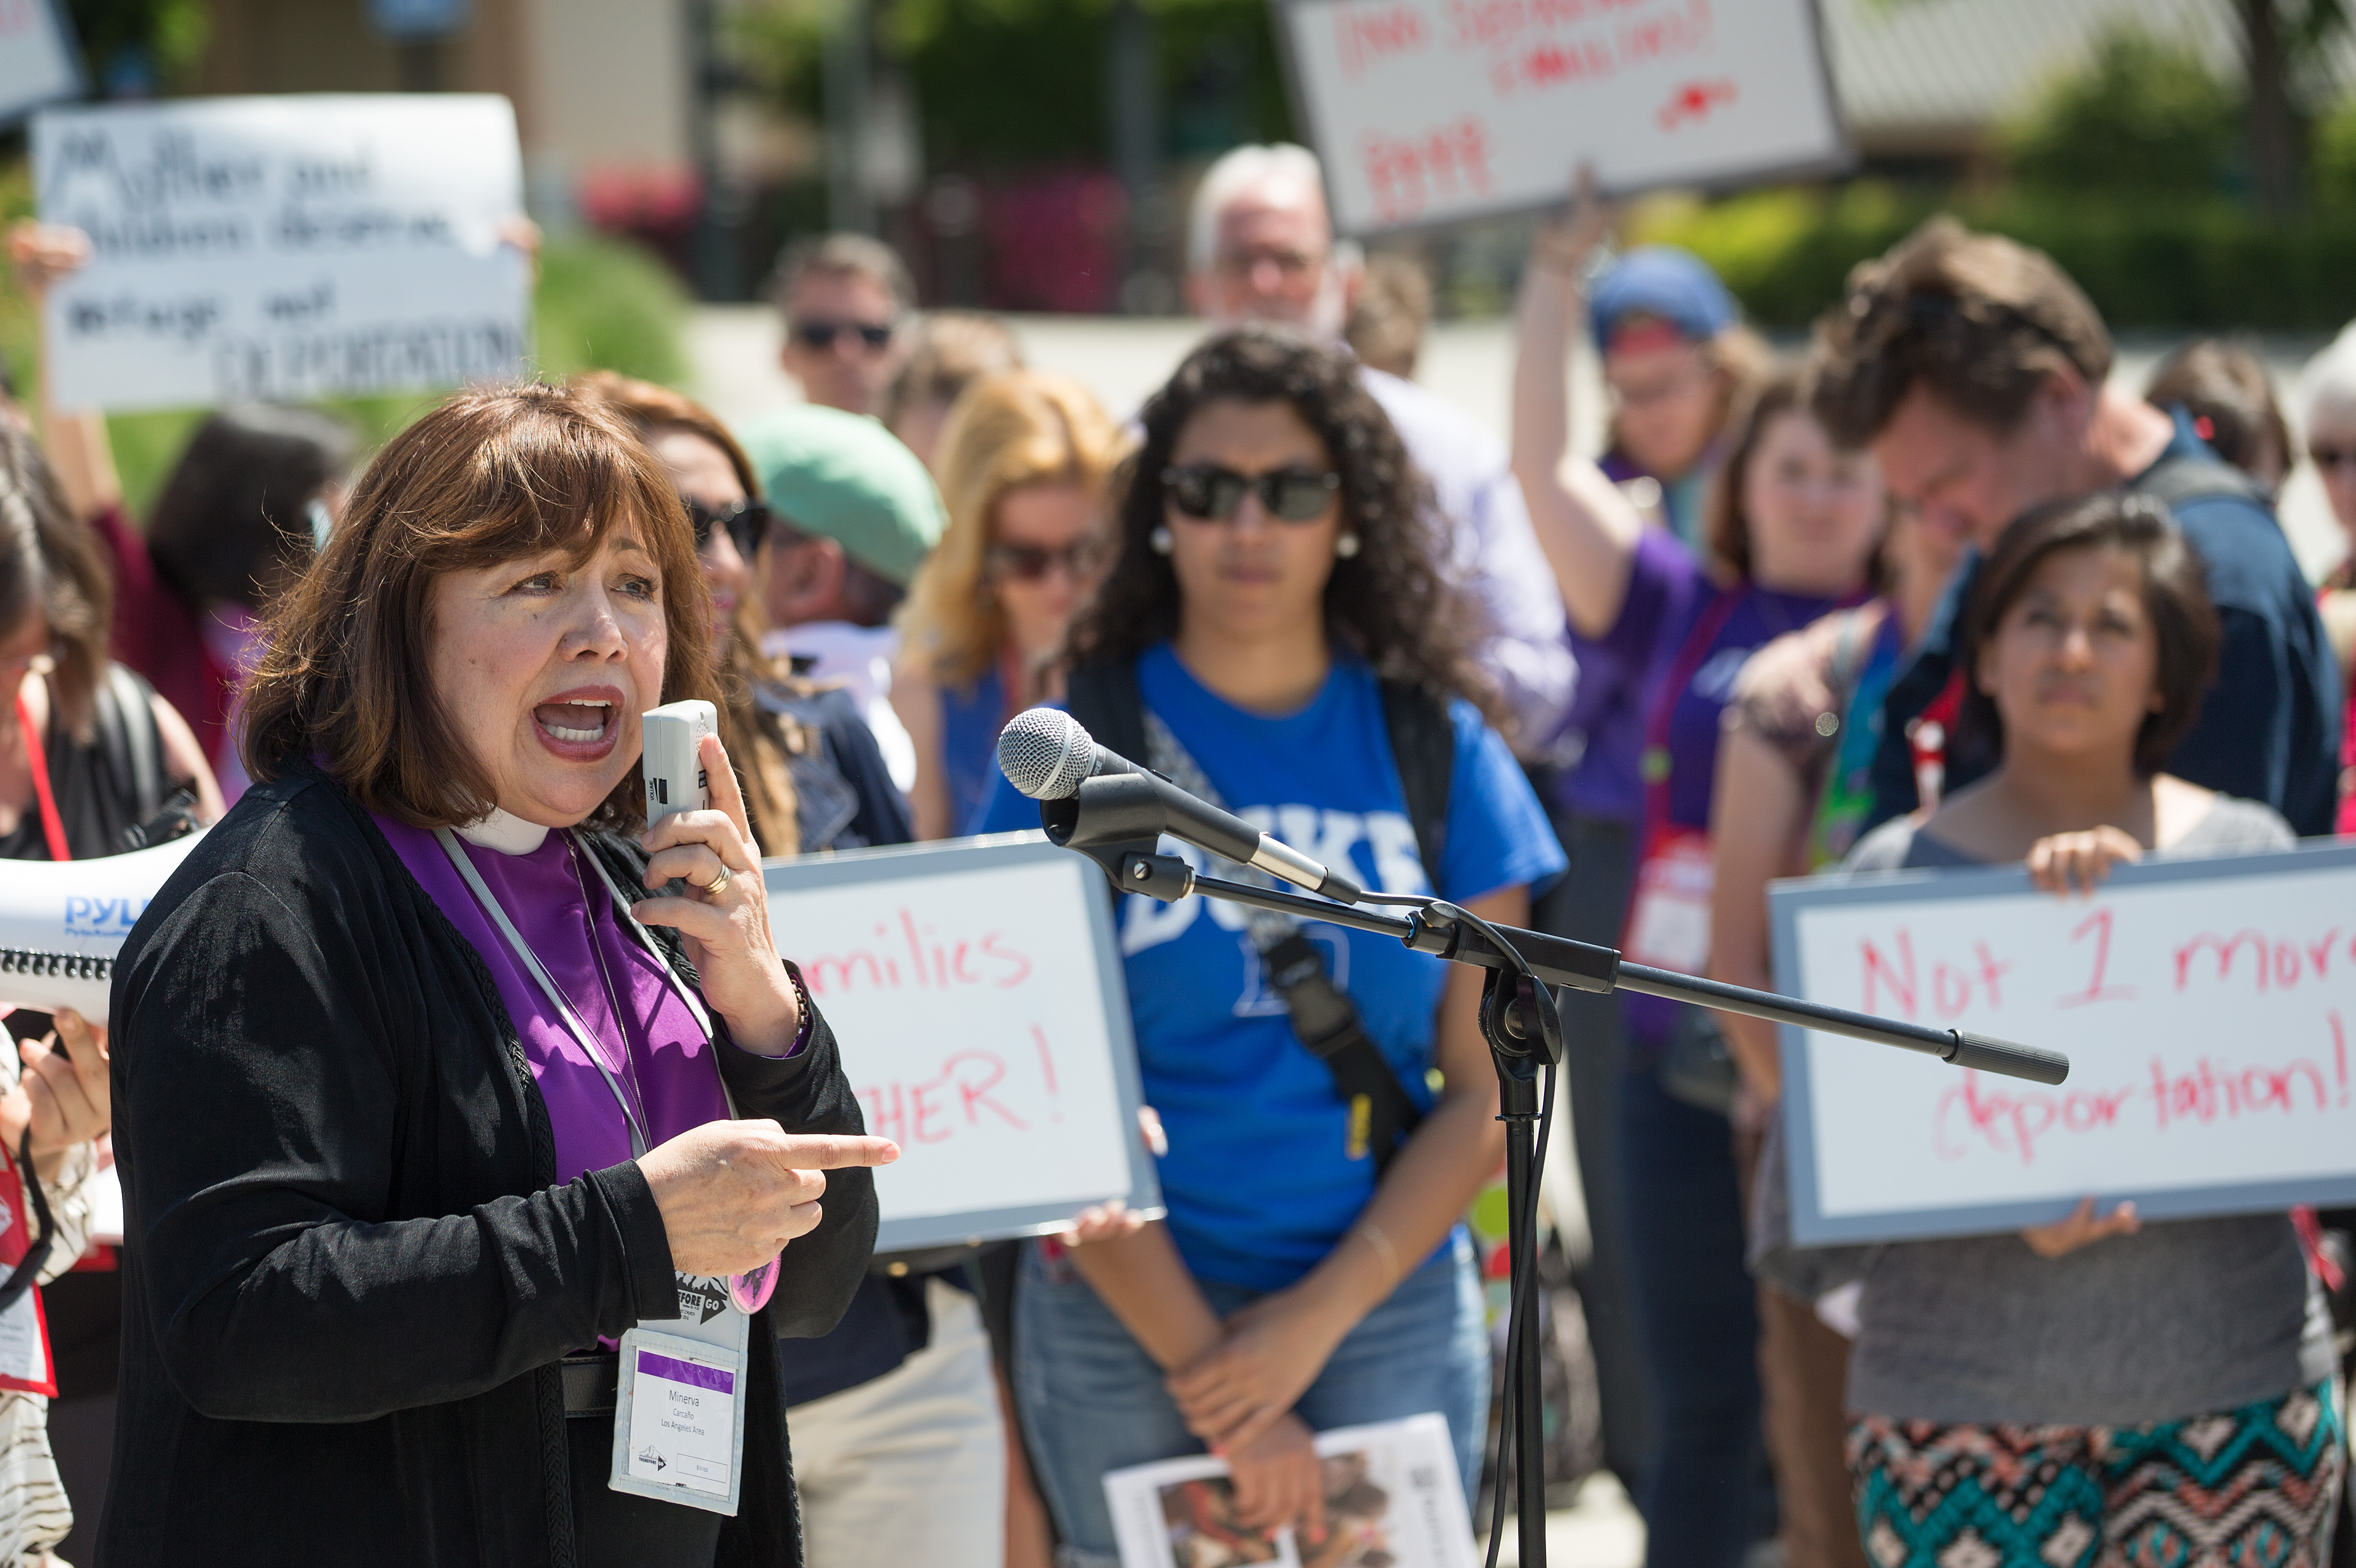 Bishop Minerva Carcaño addresses a rally of Methodists in support of immigration reform at the Convention Center Plaza outside the 2016 United Methodist General Conference in Portland, Ore. File photo by Mike DuBose, UMNS